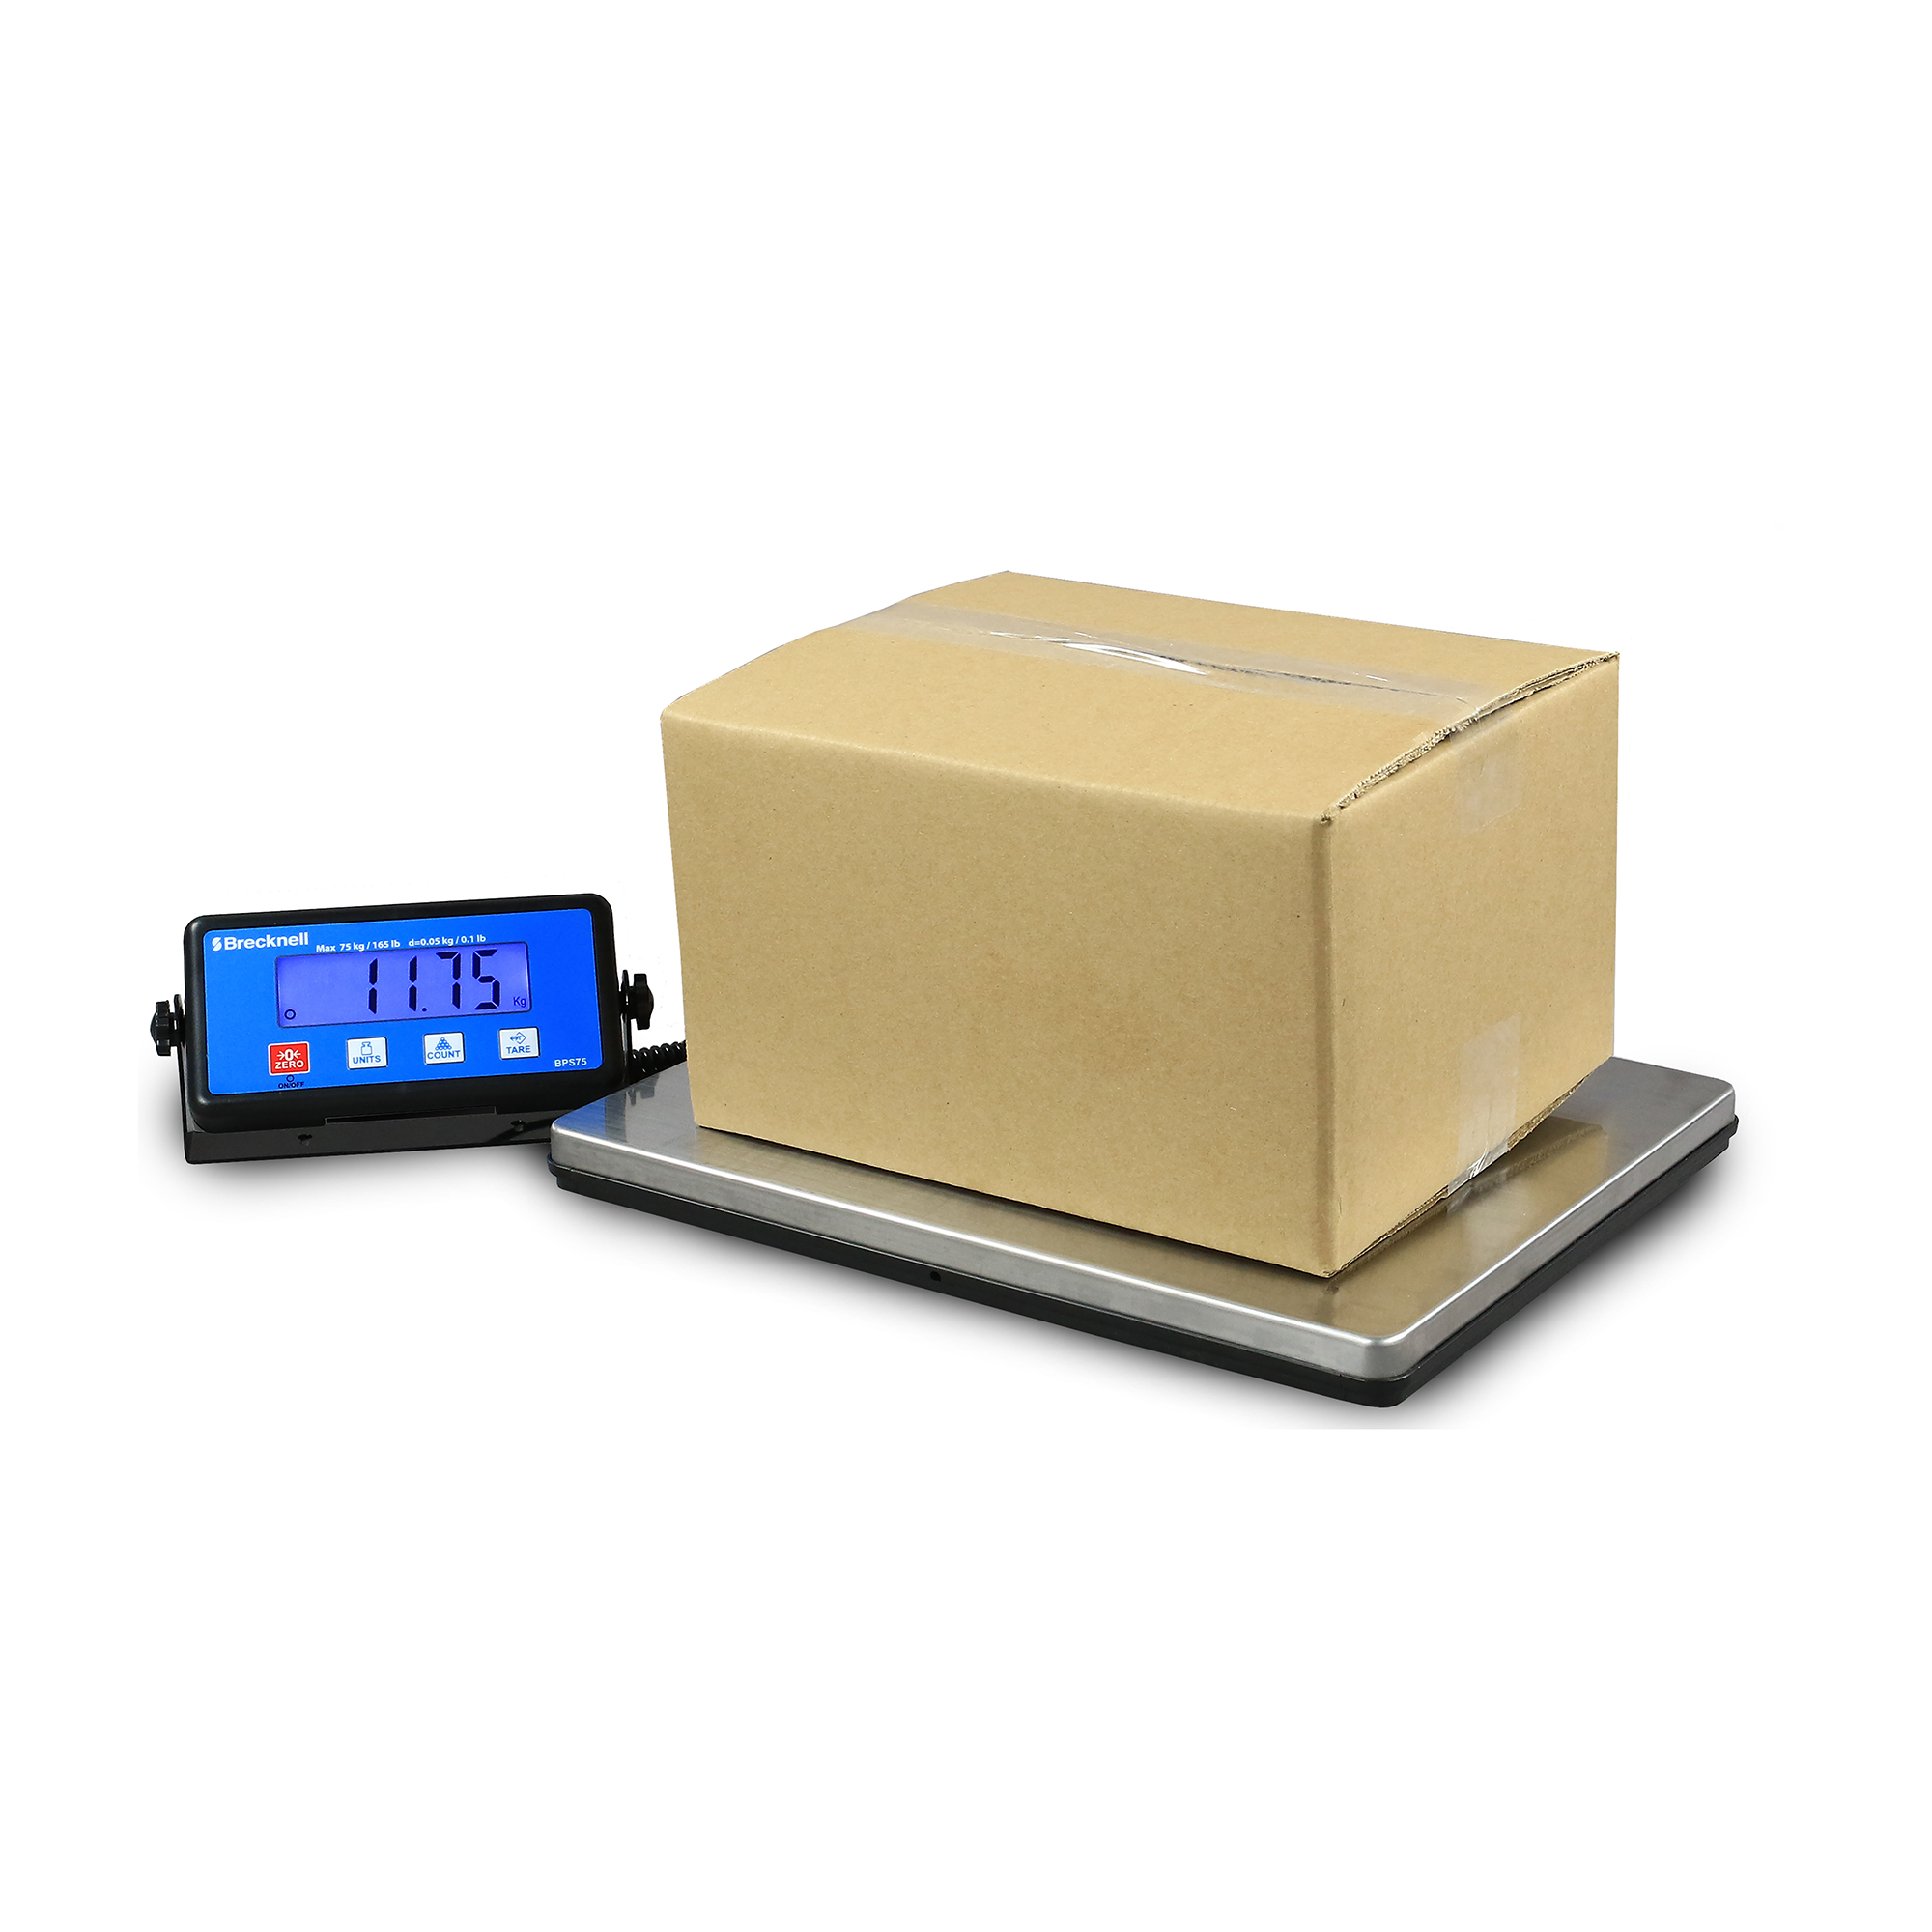 Image for BPS Series Parcel & Shipping Scales 150kg x 0.1 kg Ref 816965007127